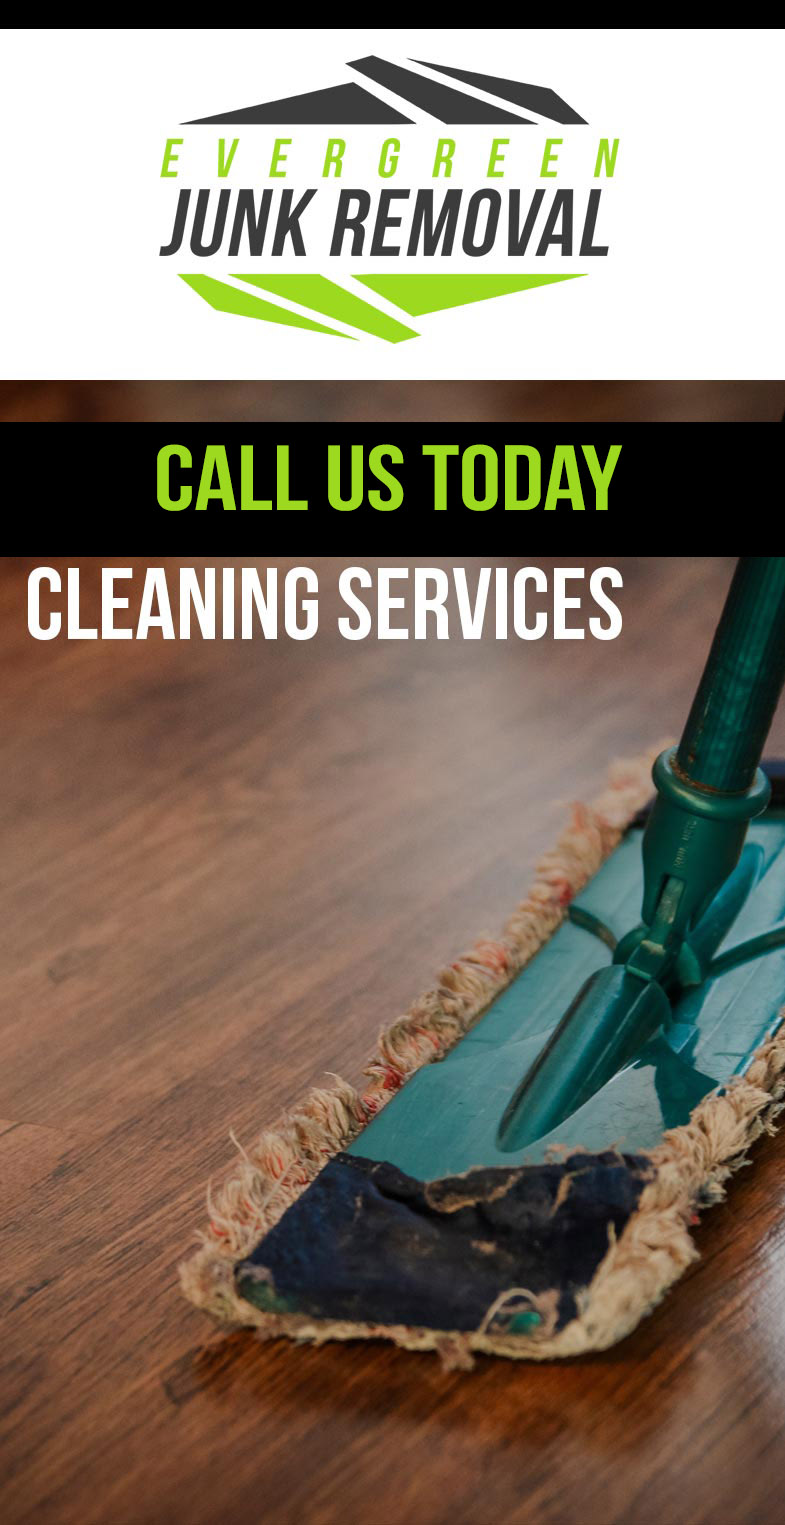 Jupiter Inlet Colony Office Cleaning Services